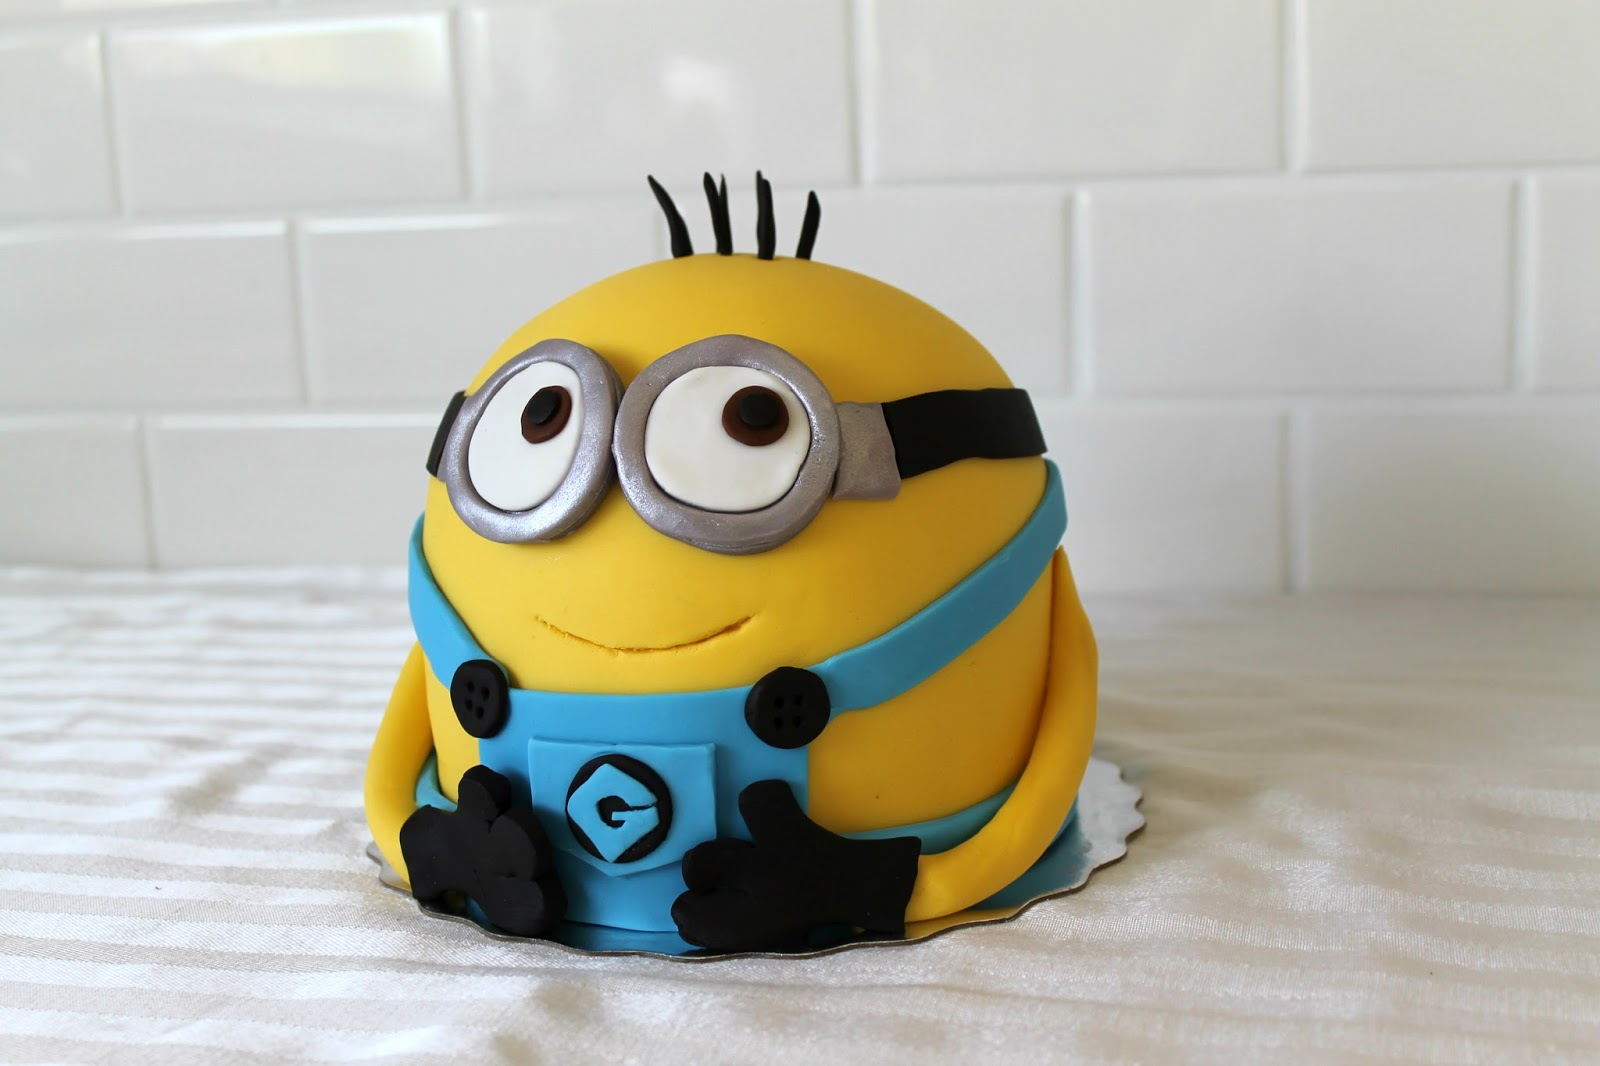 Cute Minion Cake Design 13 Incredibly Cute And Creative ...